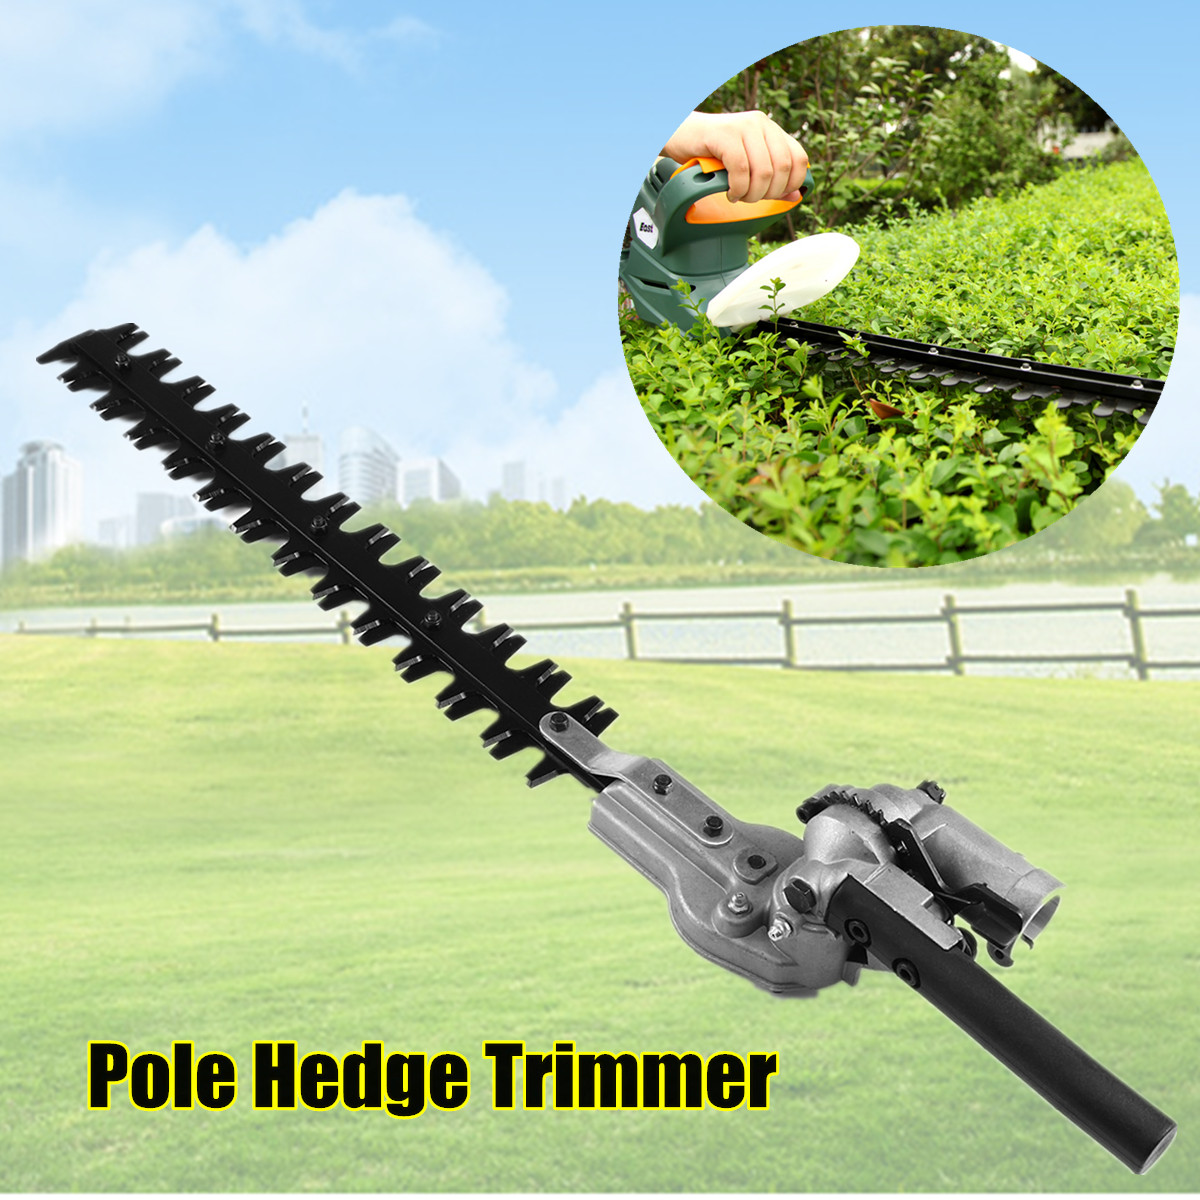 7/9 Teeth Pole Hedge Trimmer Bush Cutter Head Grass Trimmers For Garden Multi Tool Pole Chainsaw Garden Power Tools dreld carburetor carb for 1e40f 5 tb43 brush cutter chainsaw spare parts for grass trimmers and cutters garden tools parts